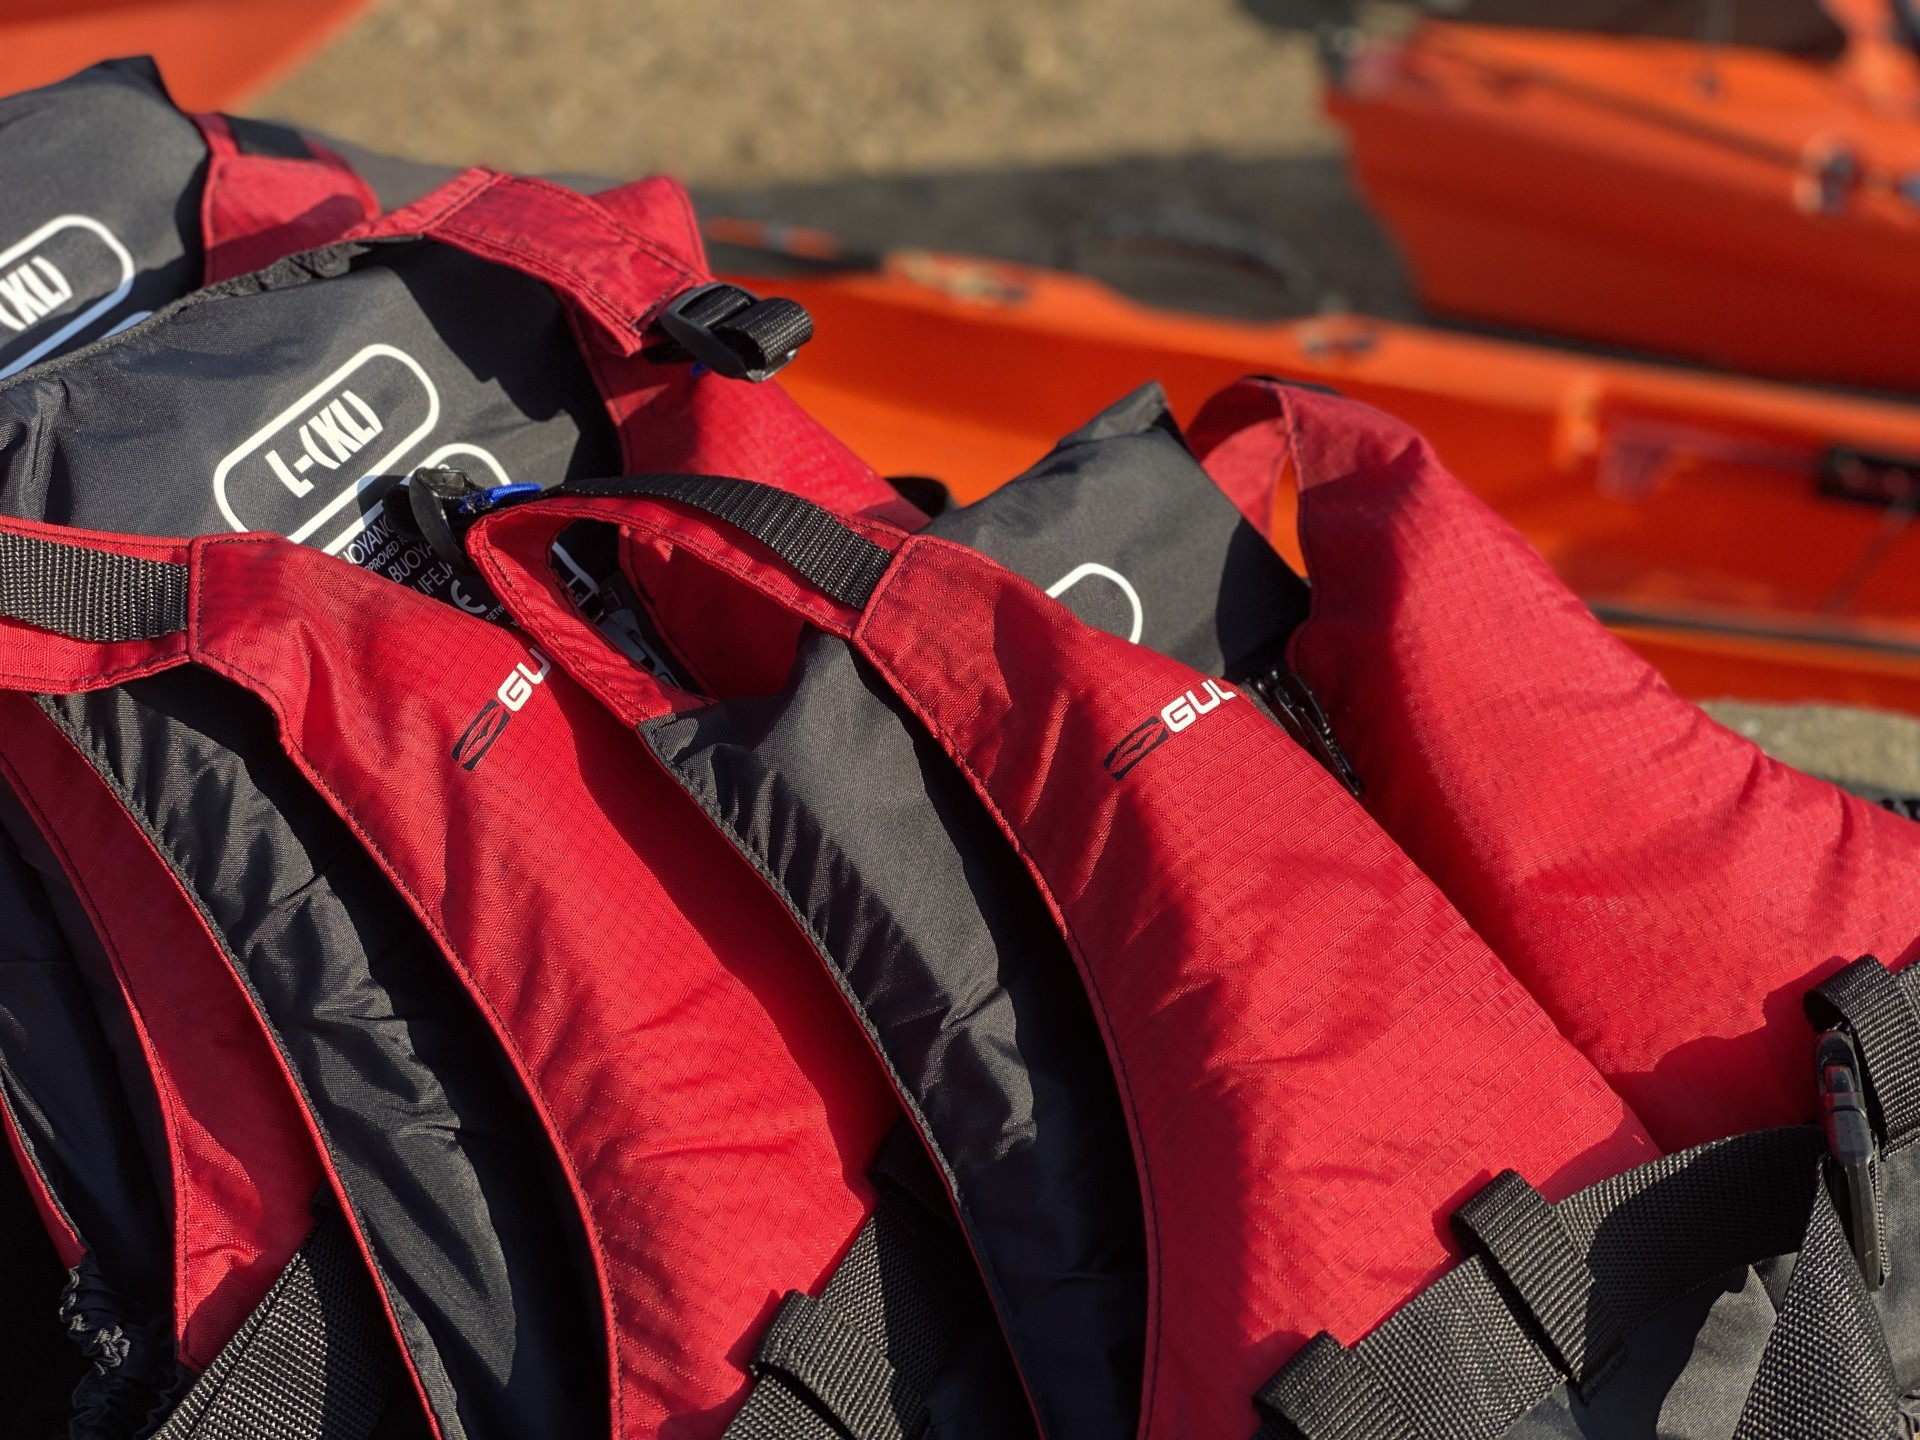 Red buoyancy aids lined up ready for use with Orange kayaks in the background.